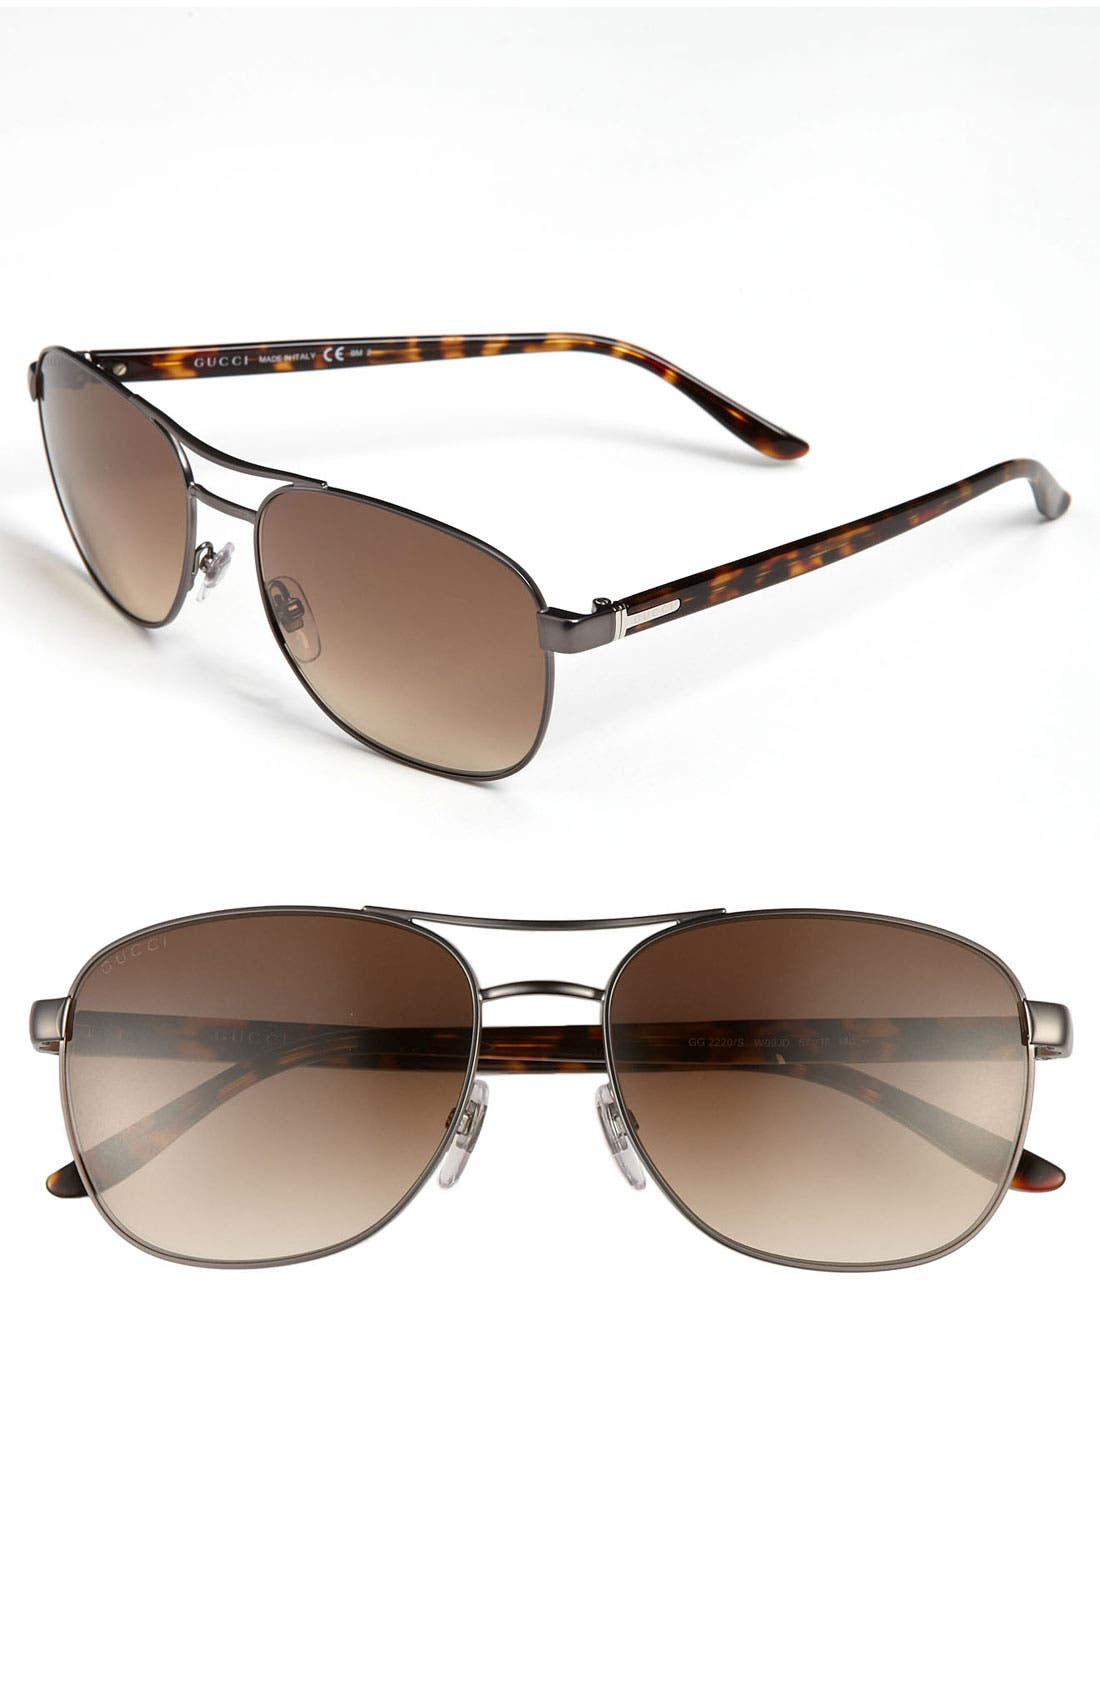 Alternate Image 1 Selected - Gucci 'Caravan' 57mm Aviator Sunglasses